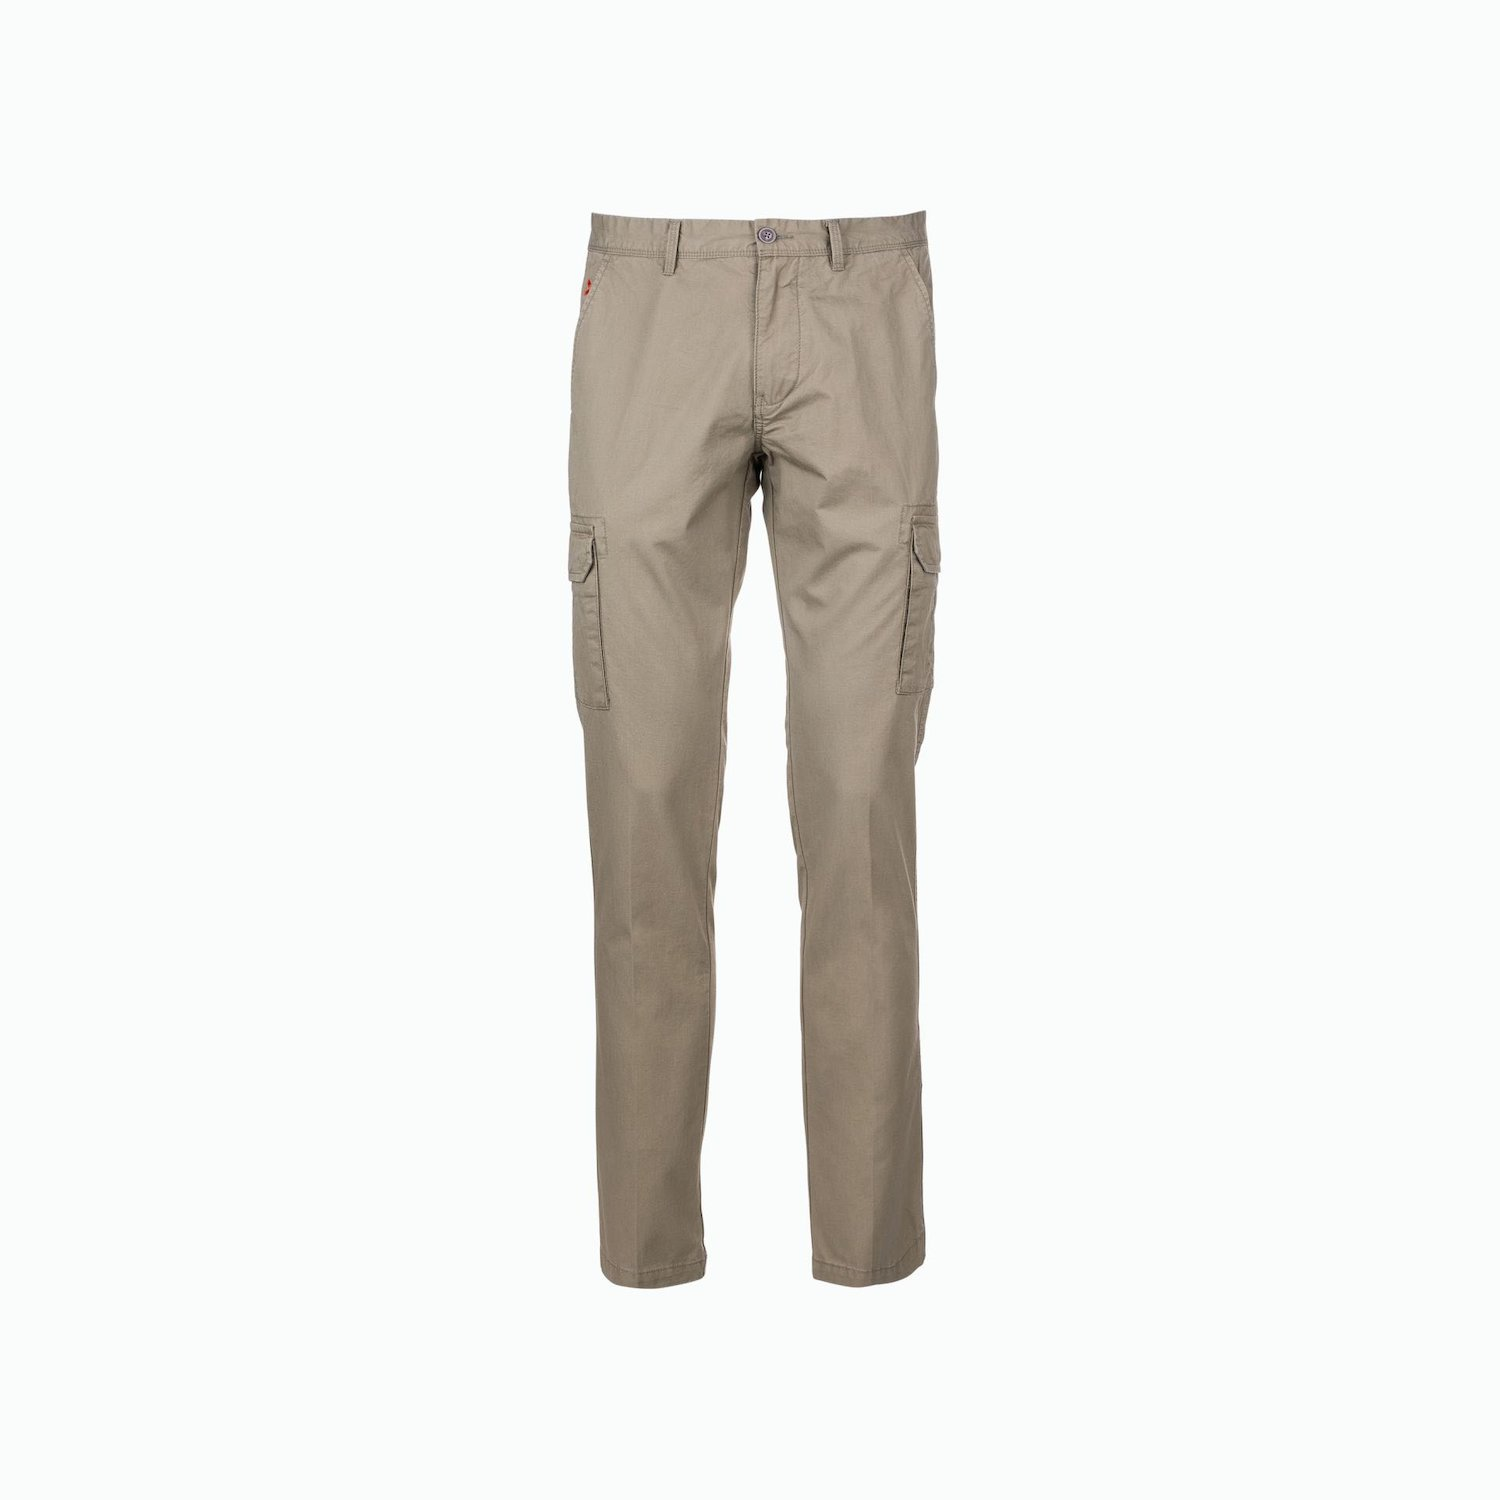 C254 Trousers - Rock